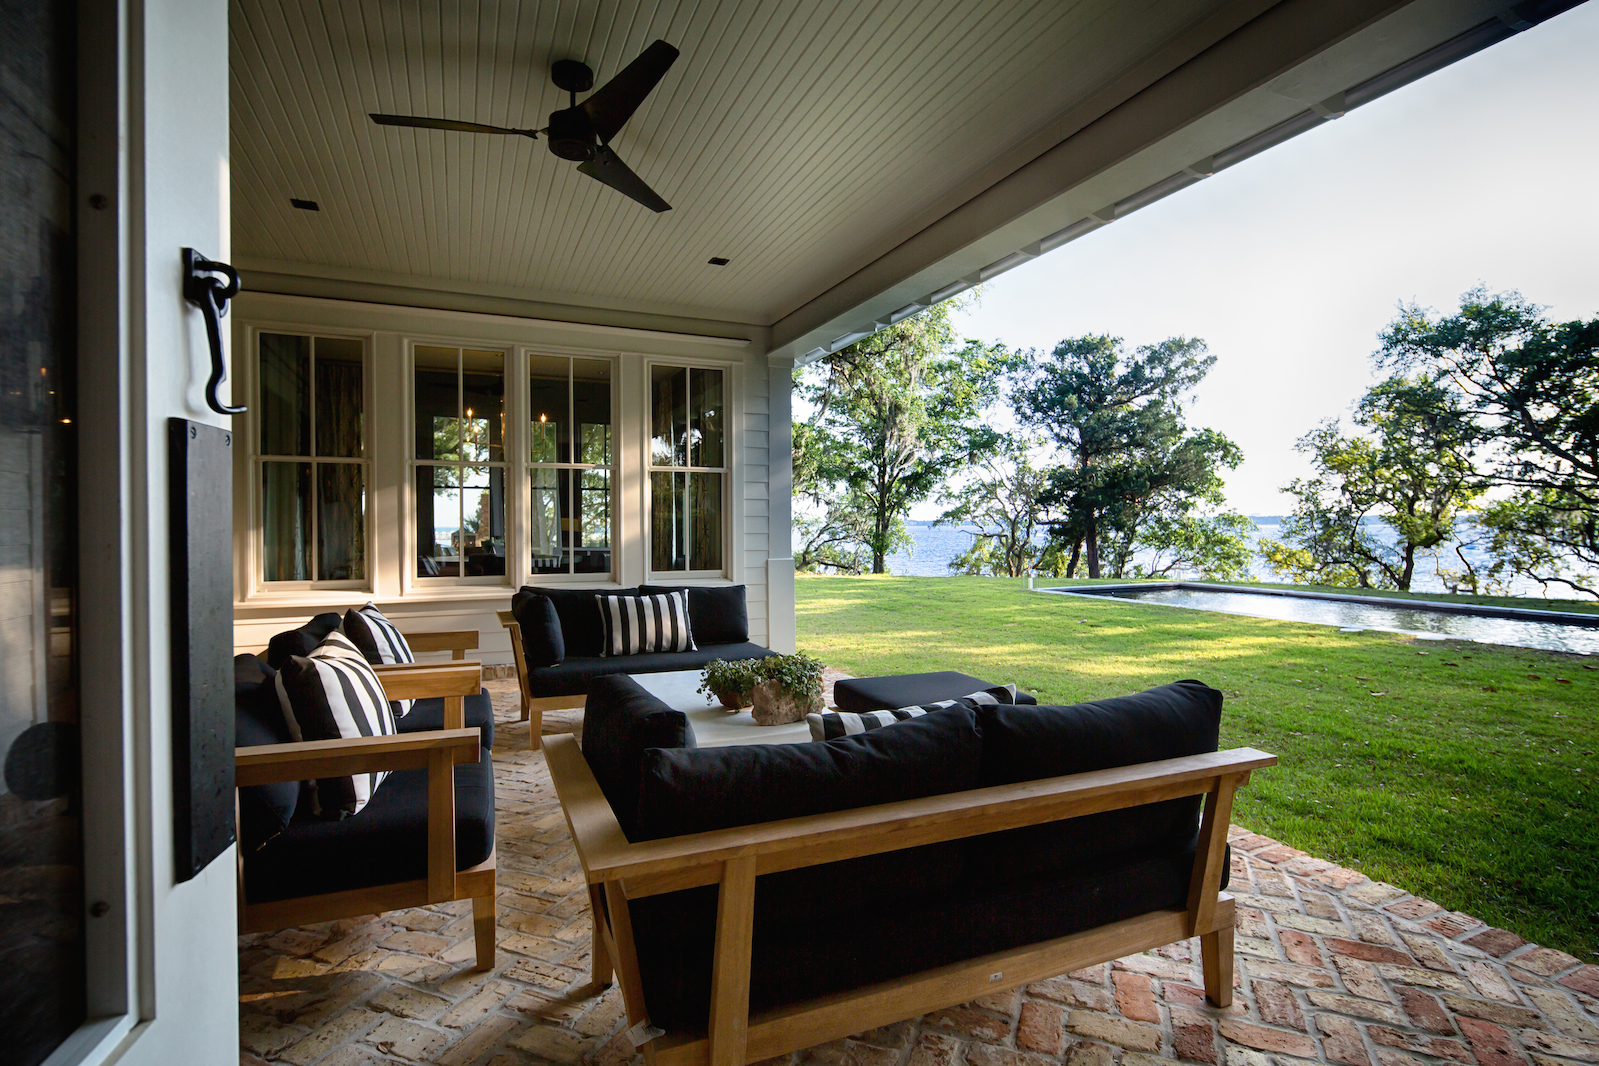 BAY HOUSE COVERED PORCH